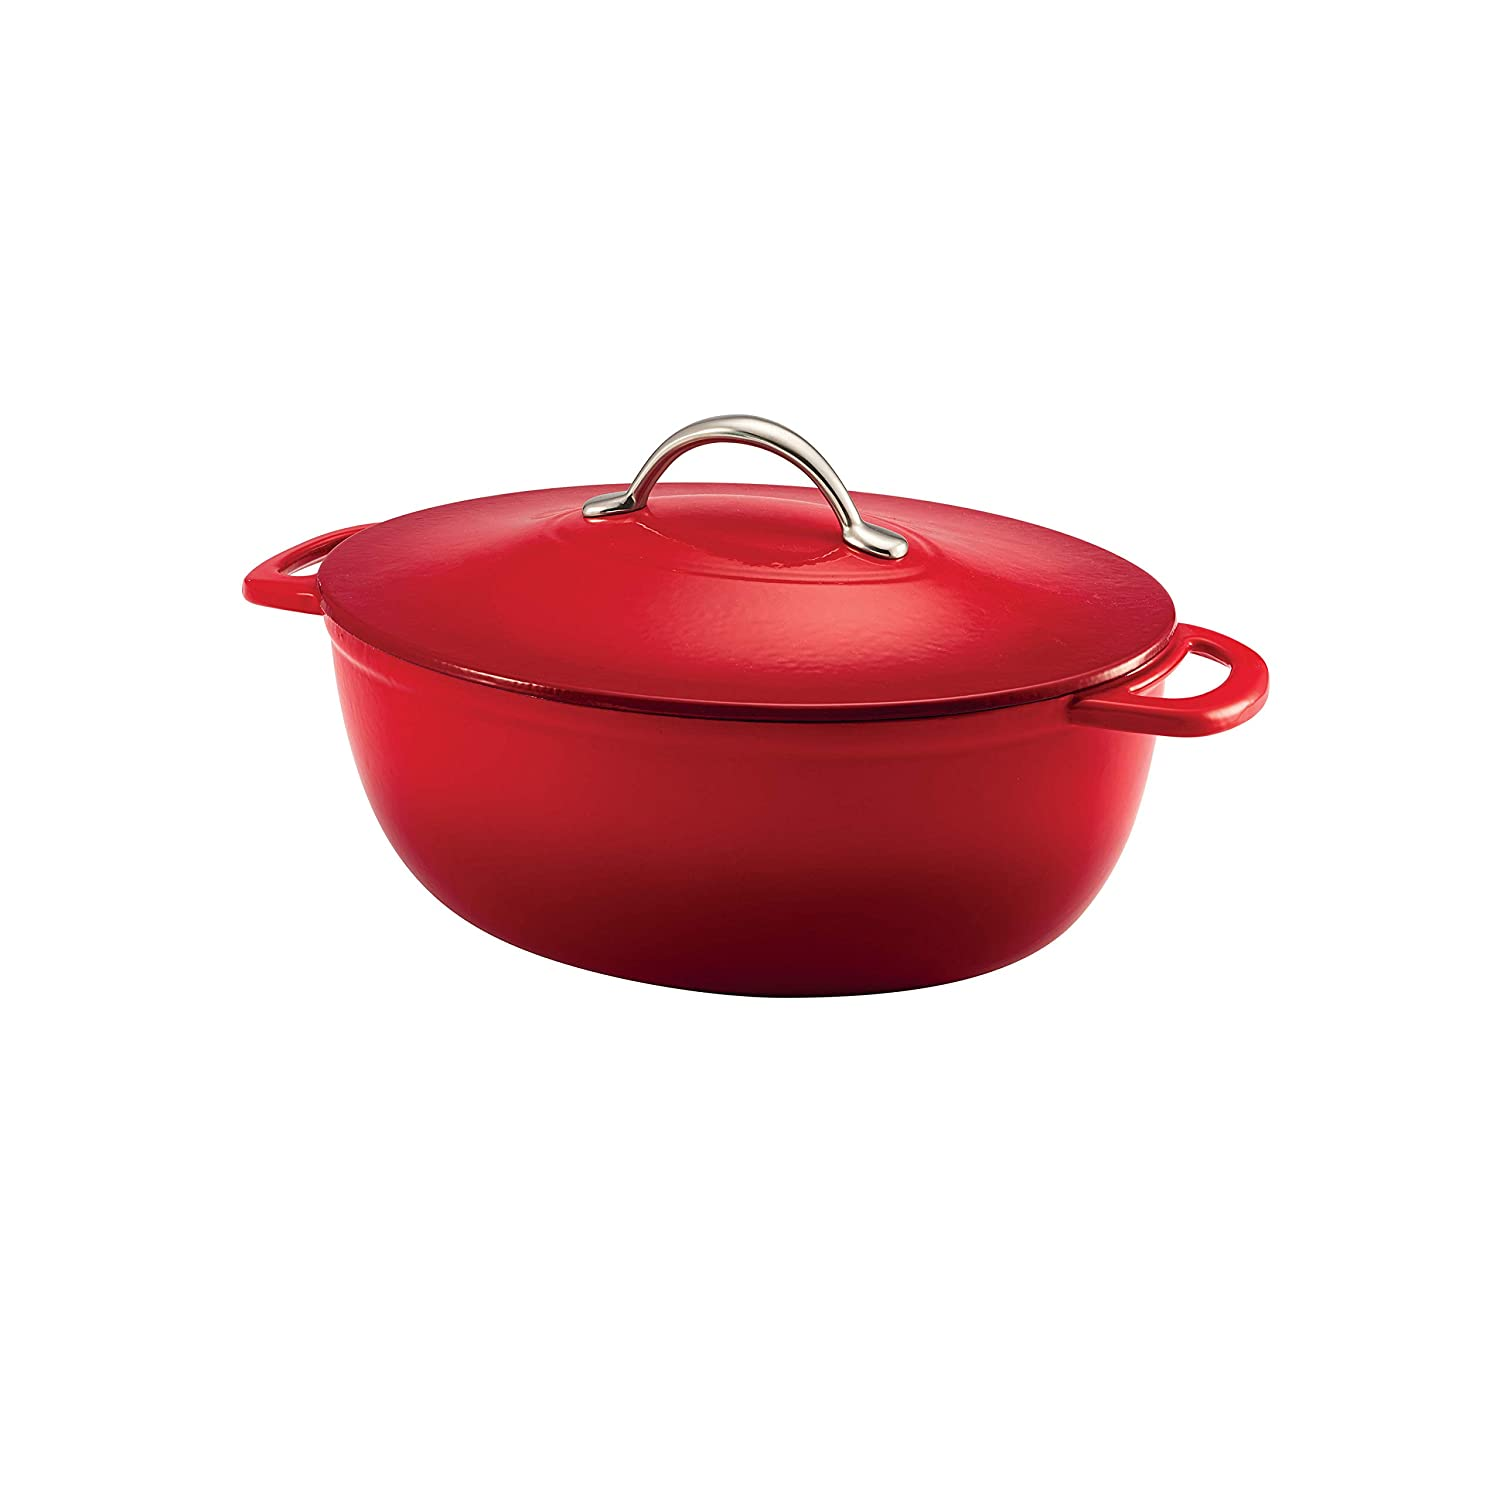 Tramontina 80131/029DS Enameled Cast Iron, Gradated Red 6.5-Quart Covered Oval Dutch Oven,